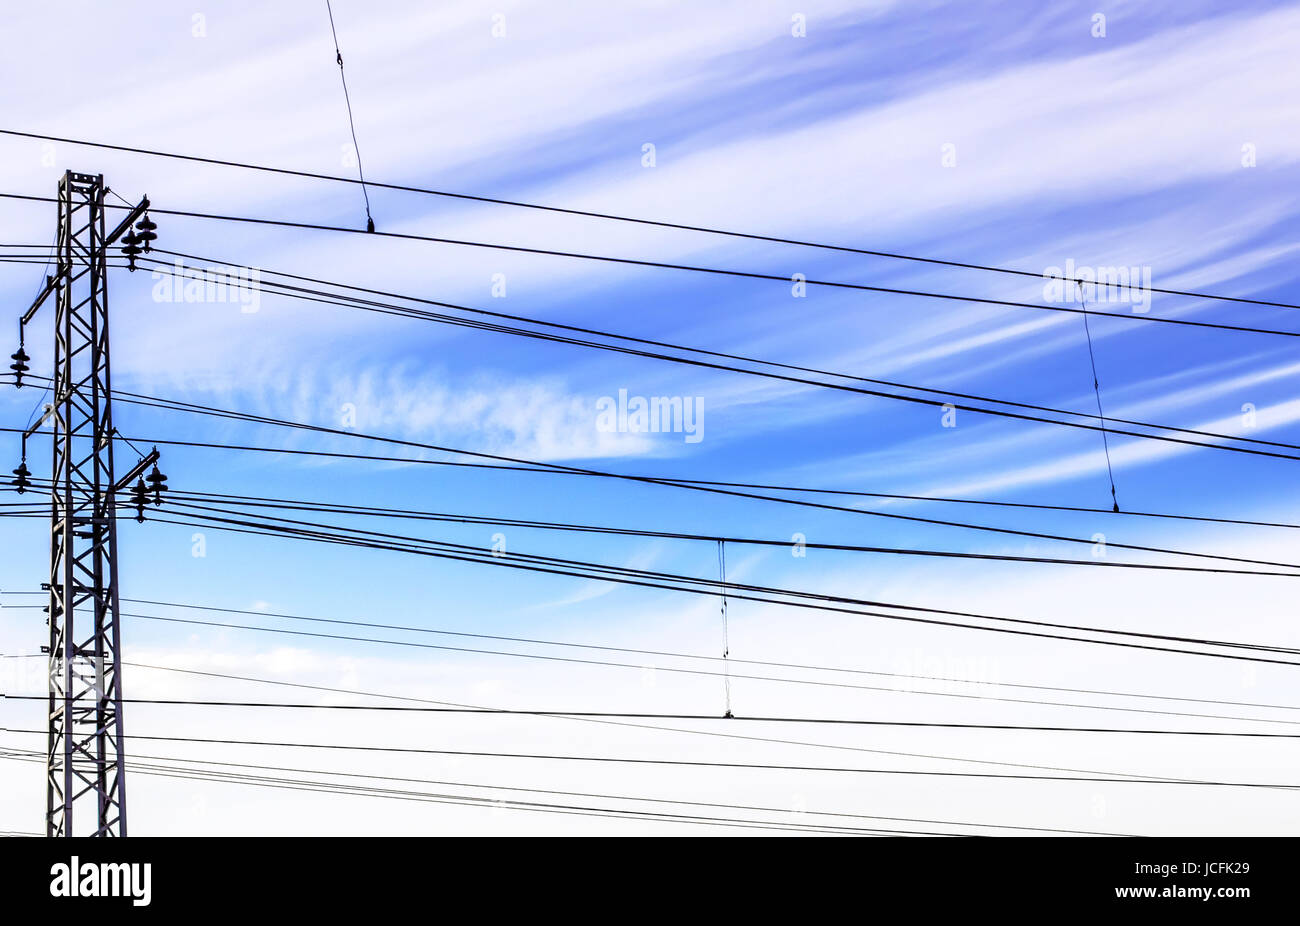 Black wire on blue sky background at day - Stock Image